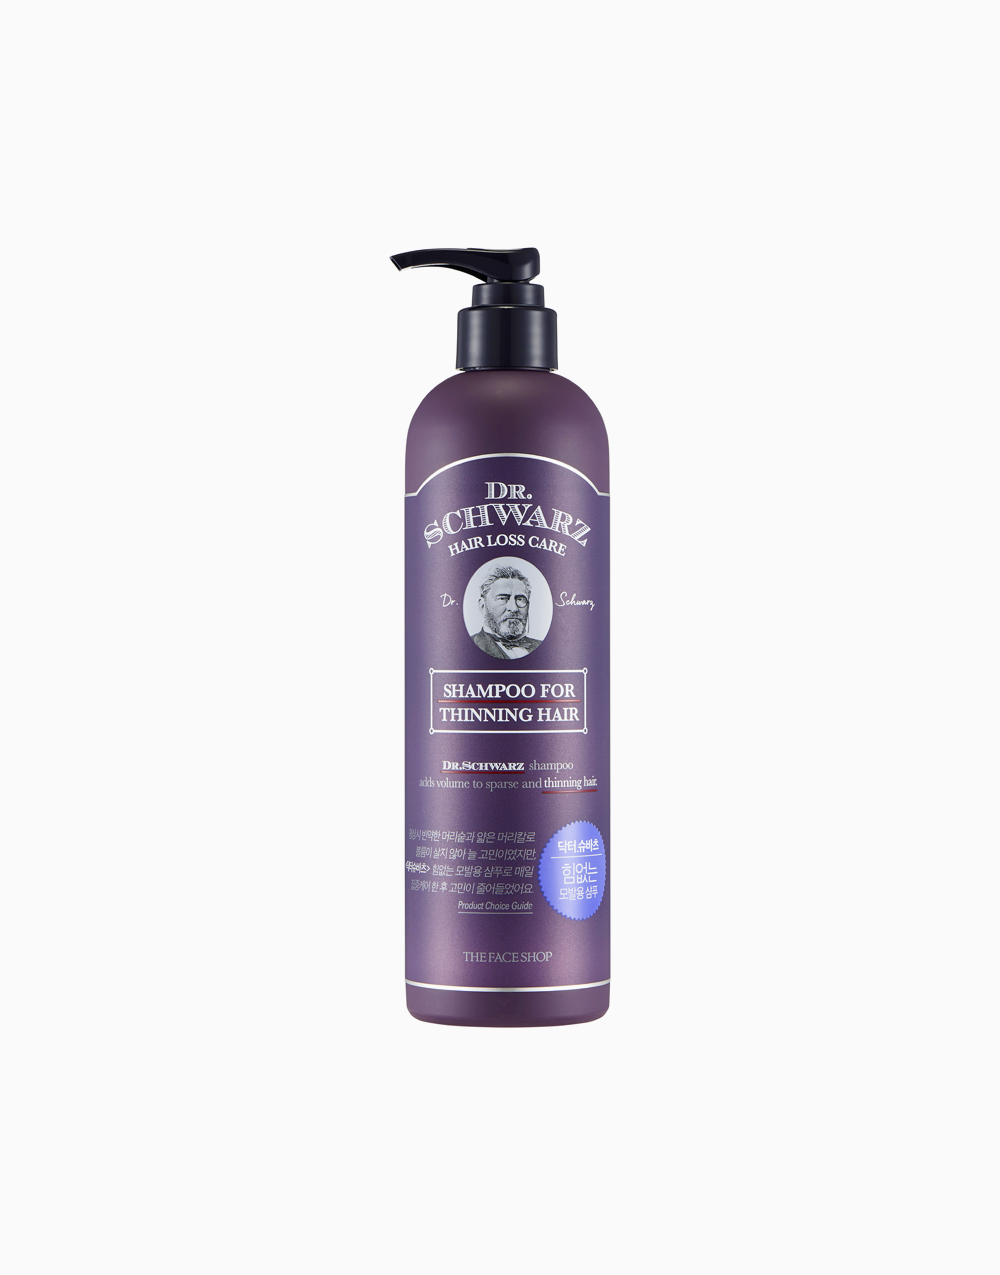 Dr. Schwarz Thinning Hair Shampoo by The Face Shop